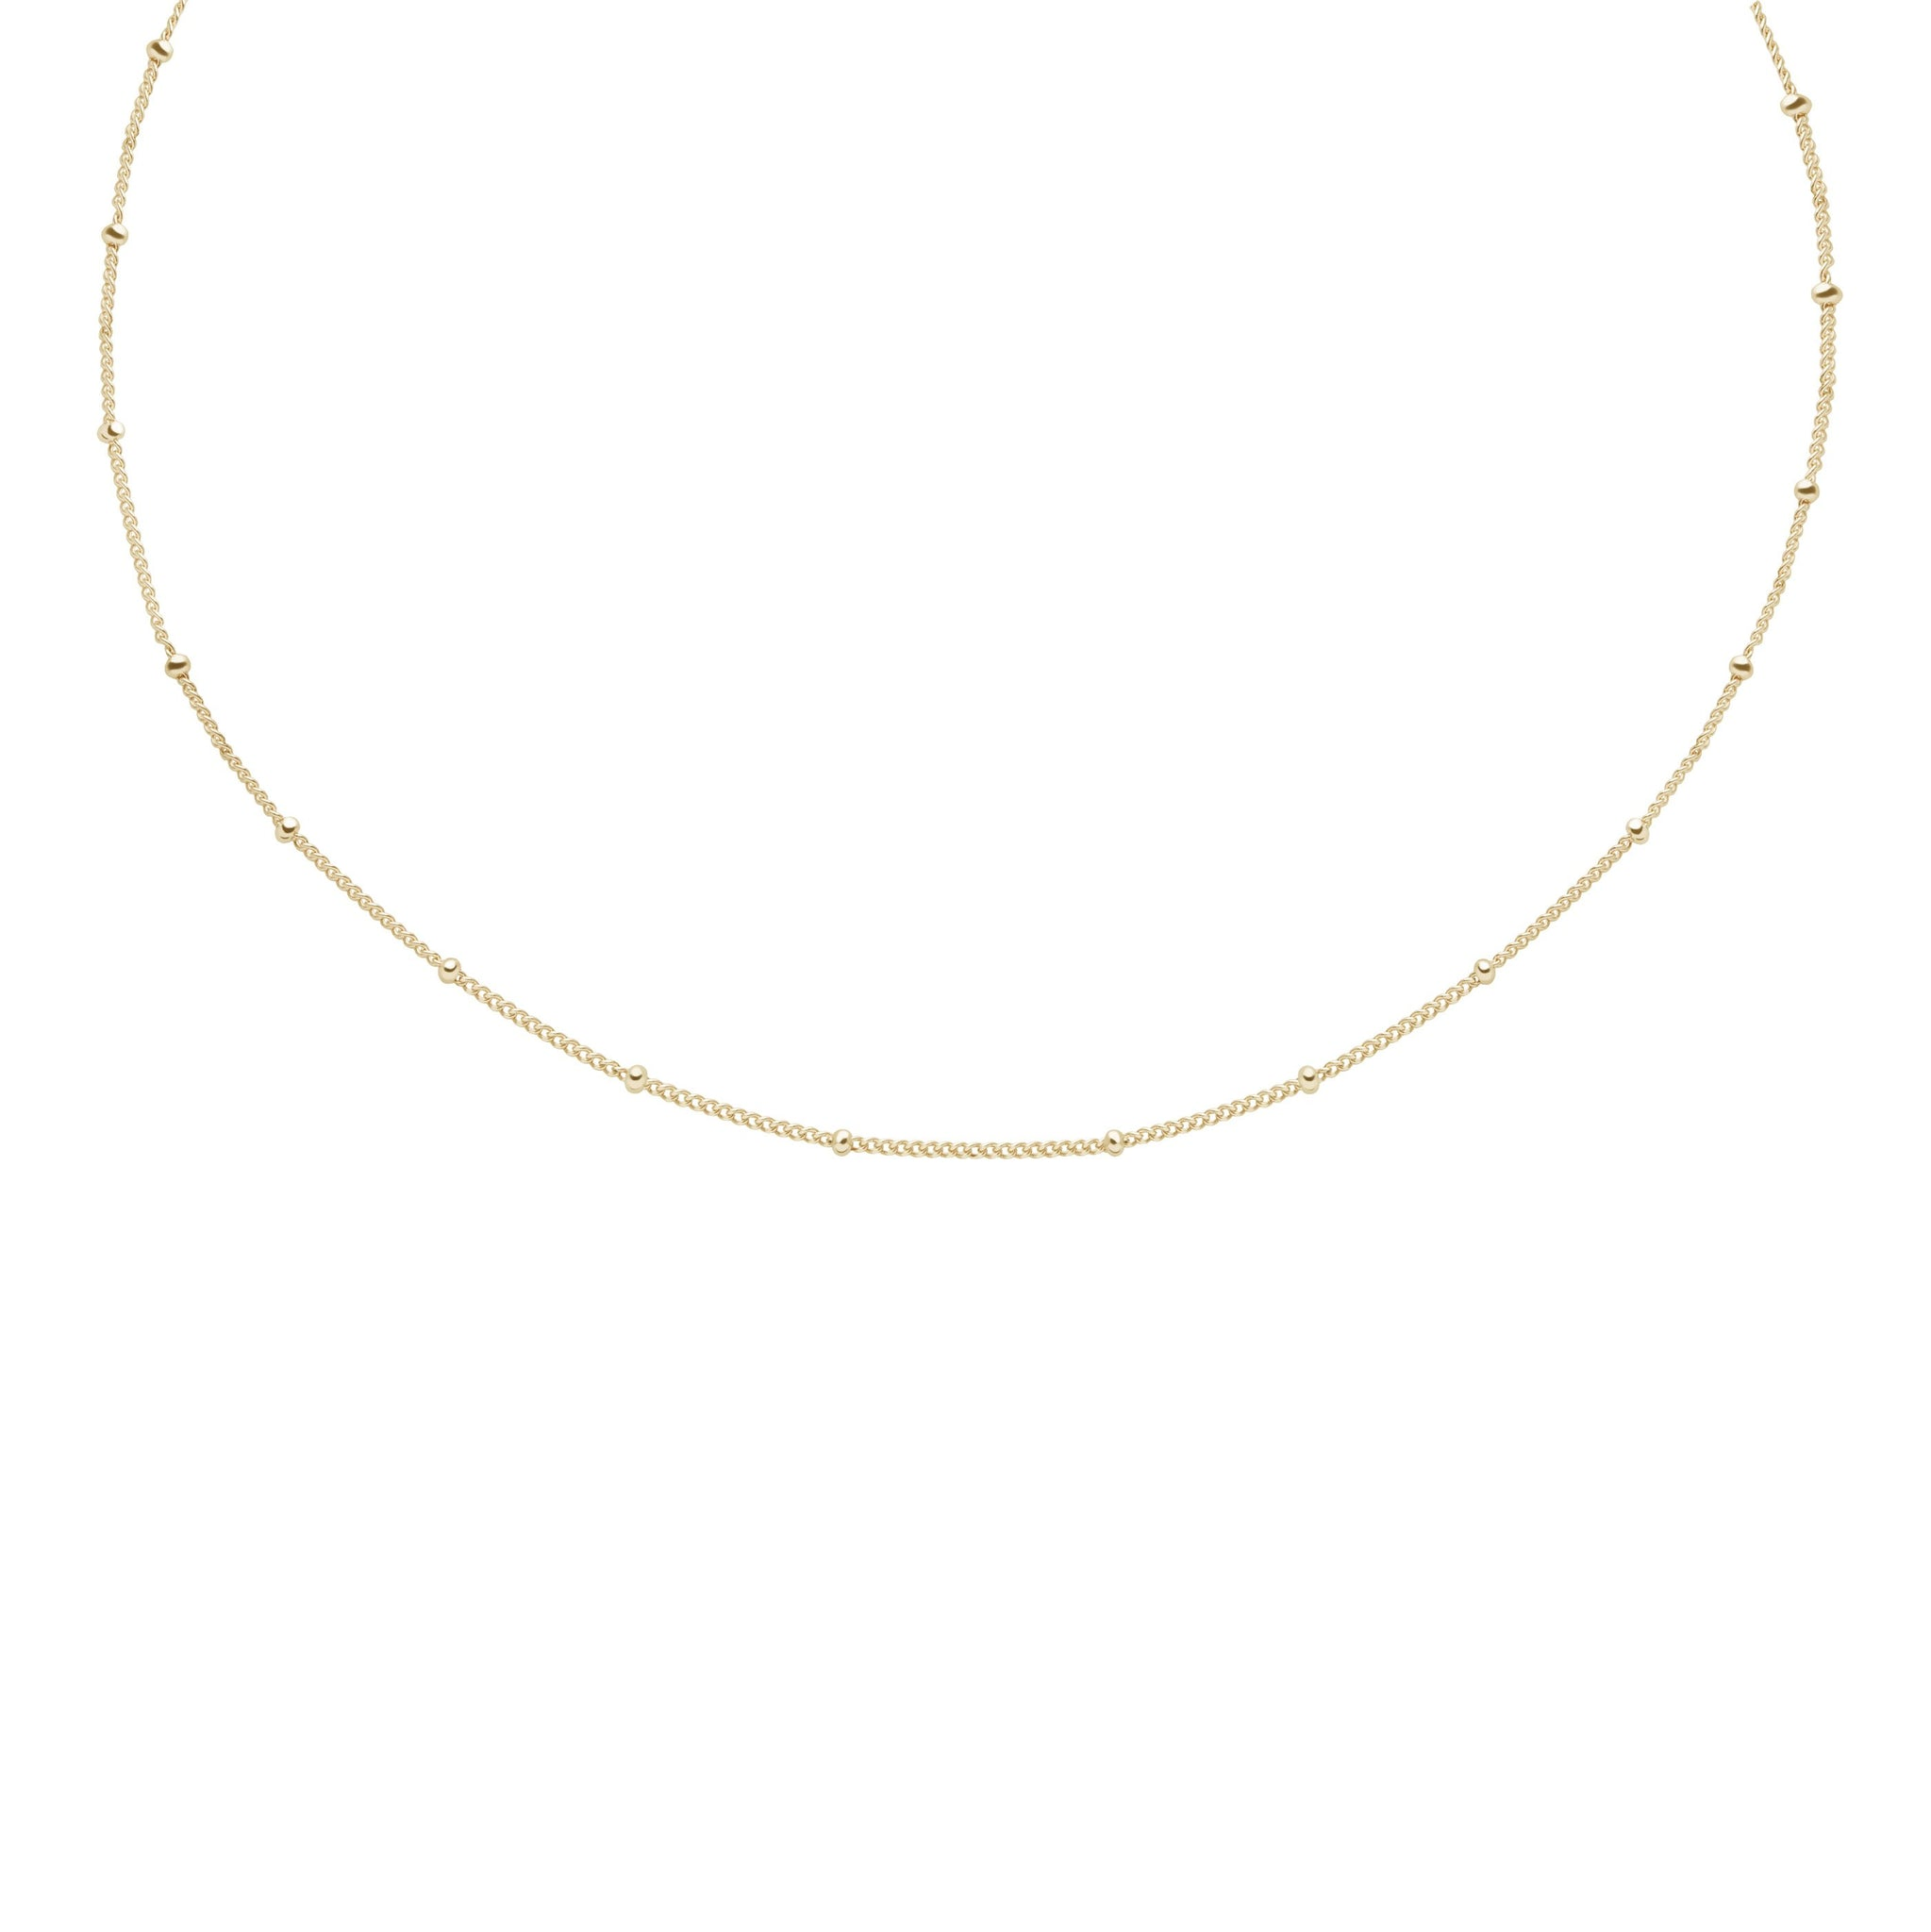 Basic Small Beaded Choker in Gold